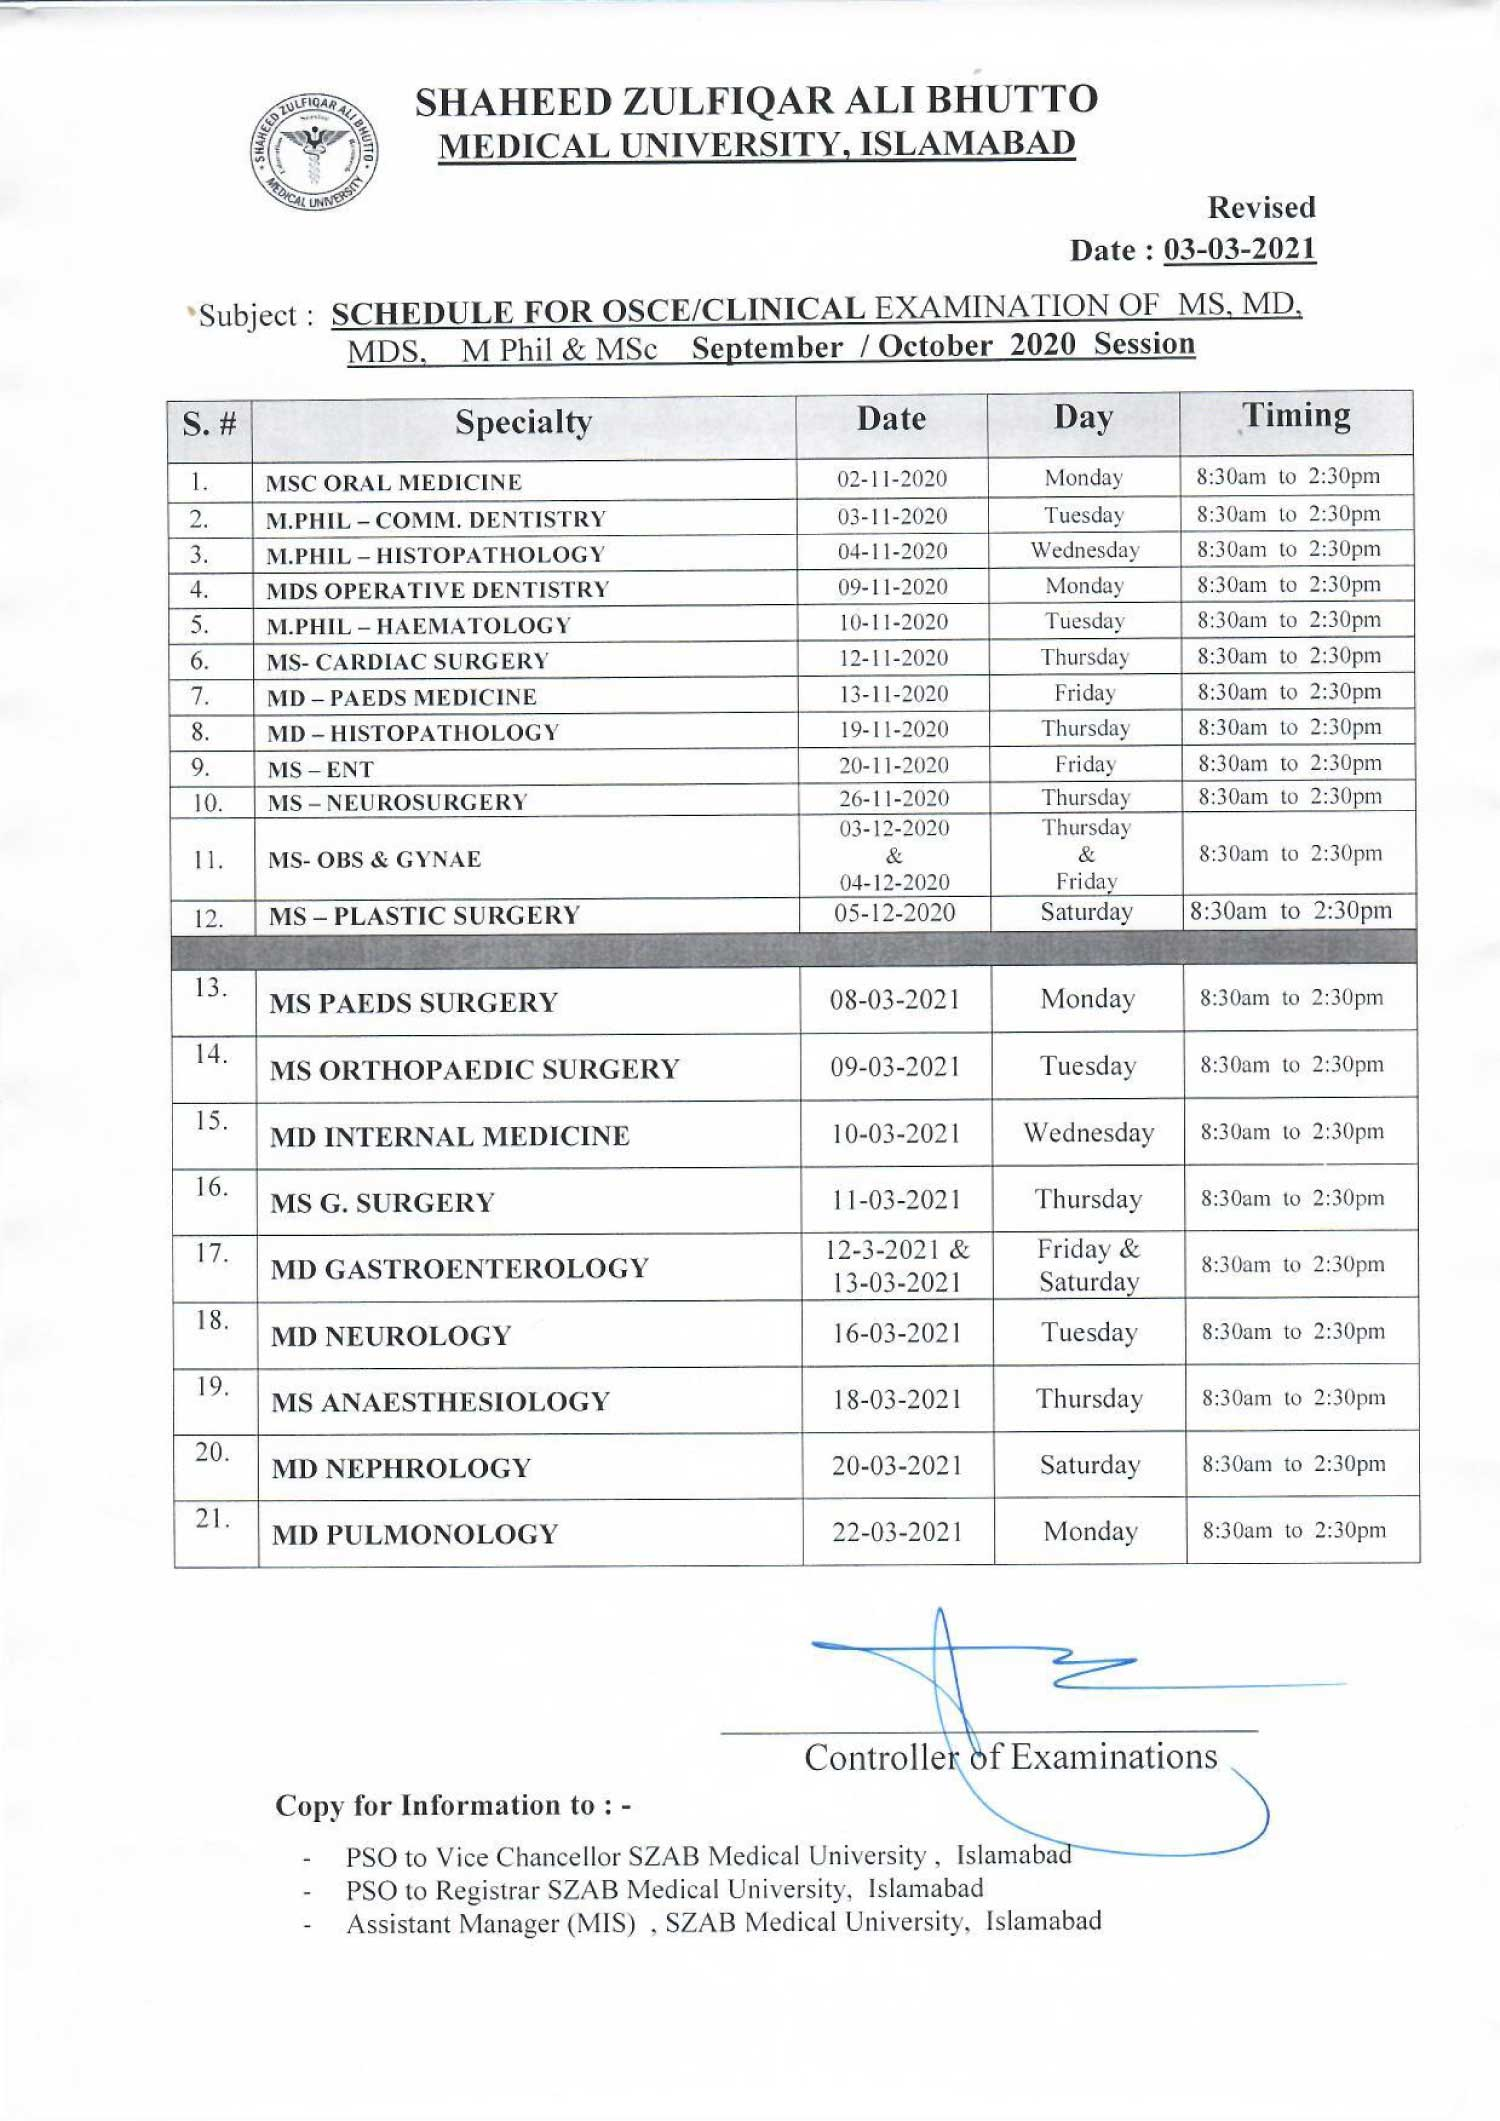 Revised schedule of Clinical Examination